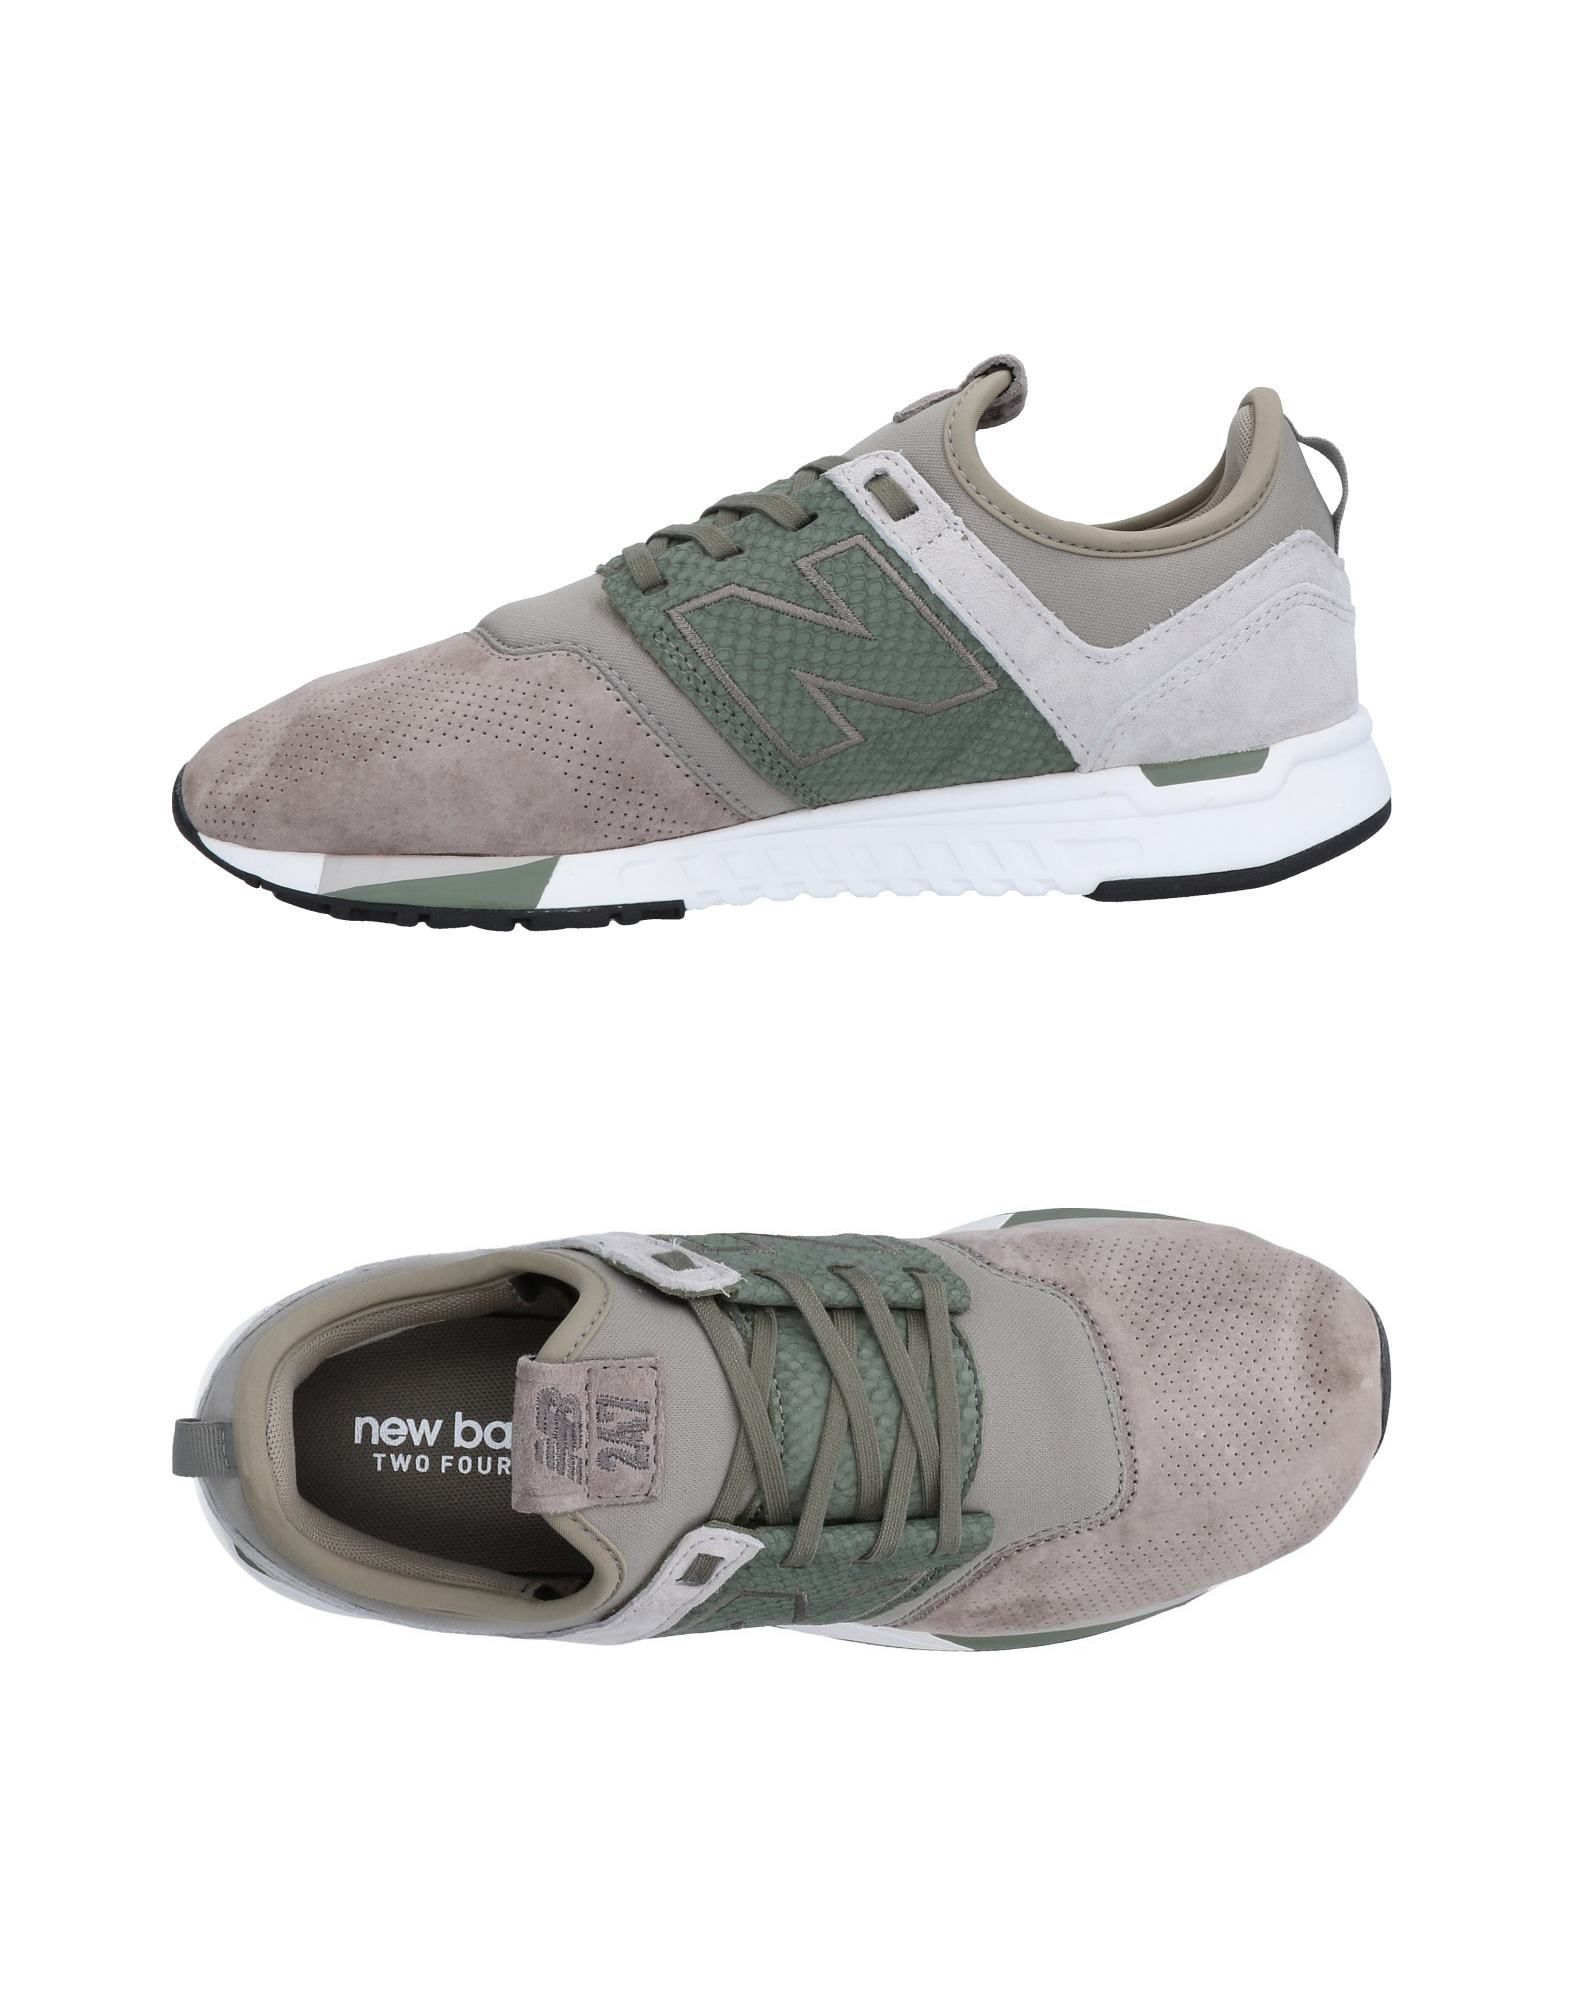 Sneakers New Balance Balance Homme - Sneakers New Balance Balance  Gris Chaussures femme pas cher homme et femme 5f06e8